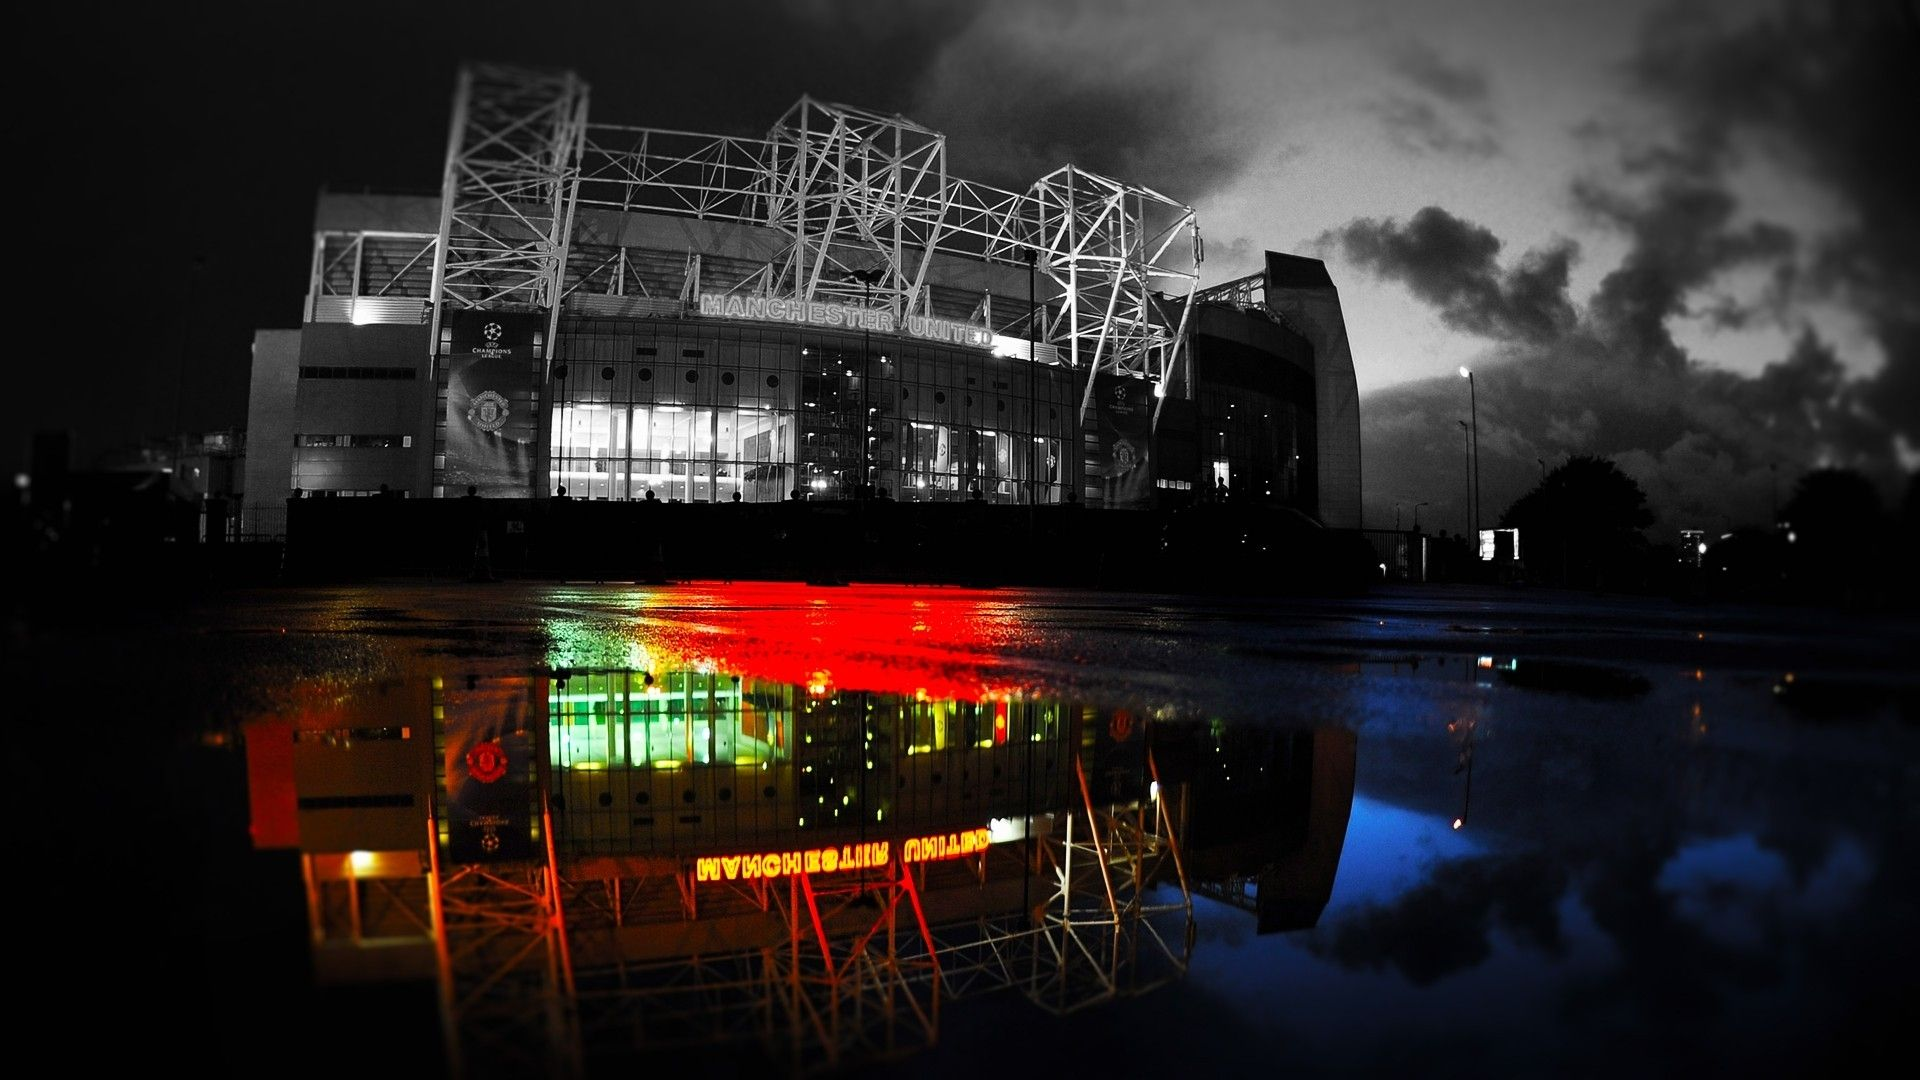 The Best Manchester United Stadium Night